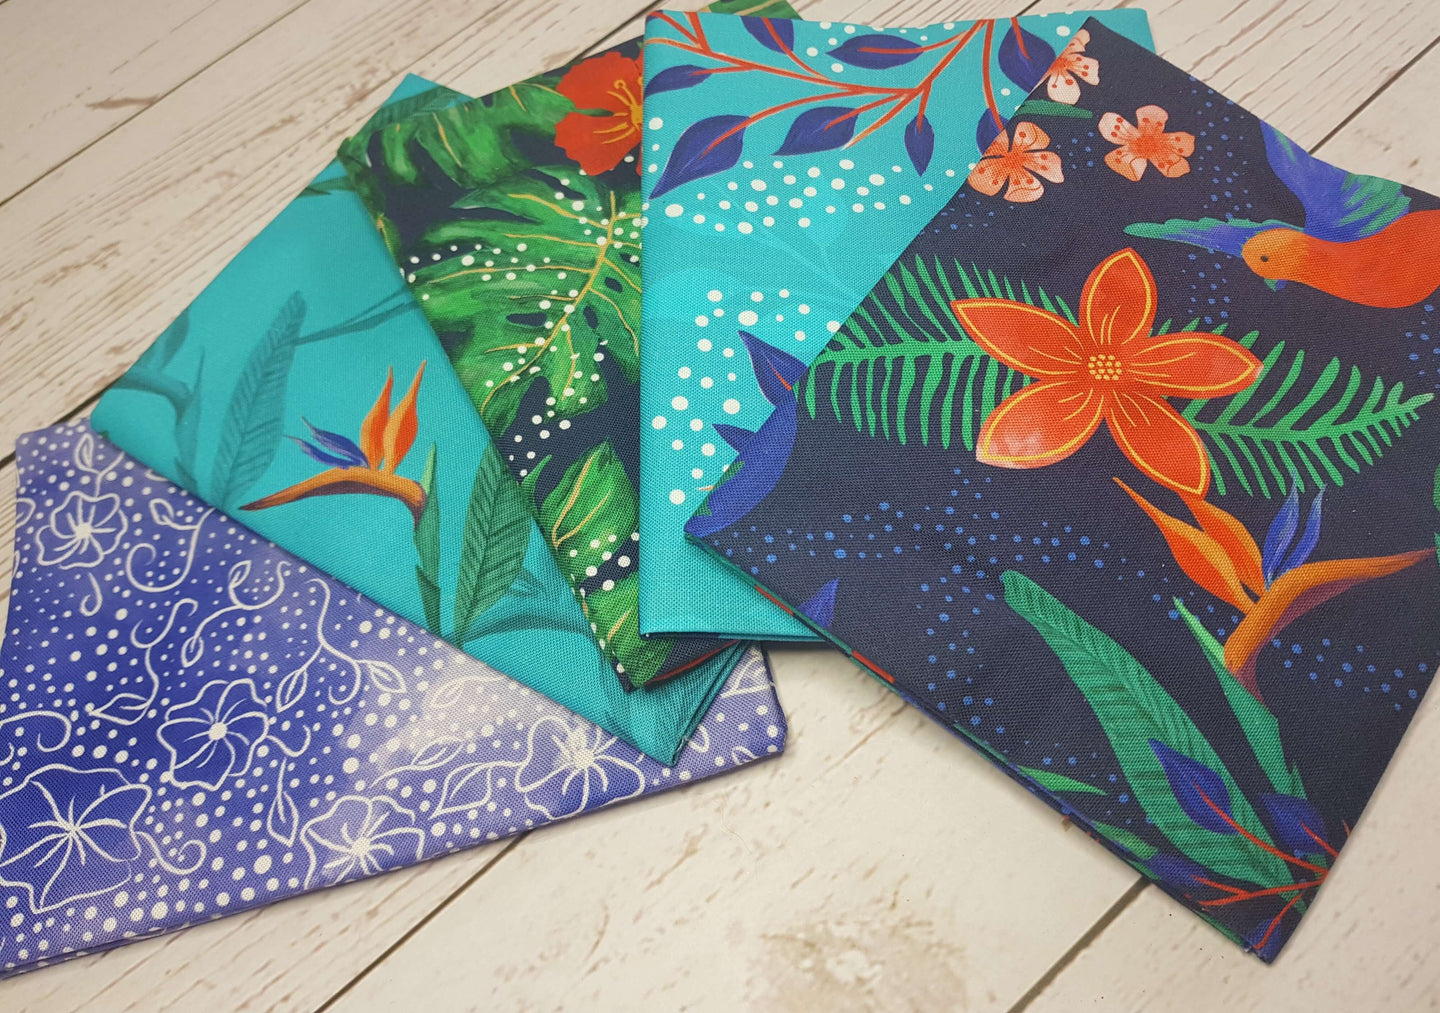 Birds of Paradise 5 x fat quarter bundle craft cotton quilting fabric. Tropical Navy blue and orange.